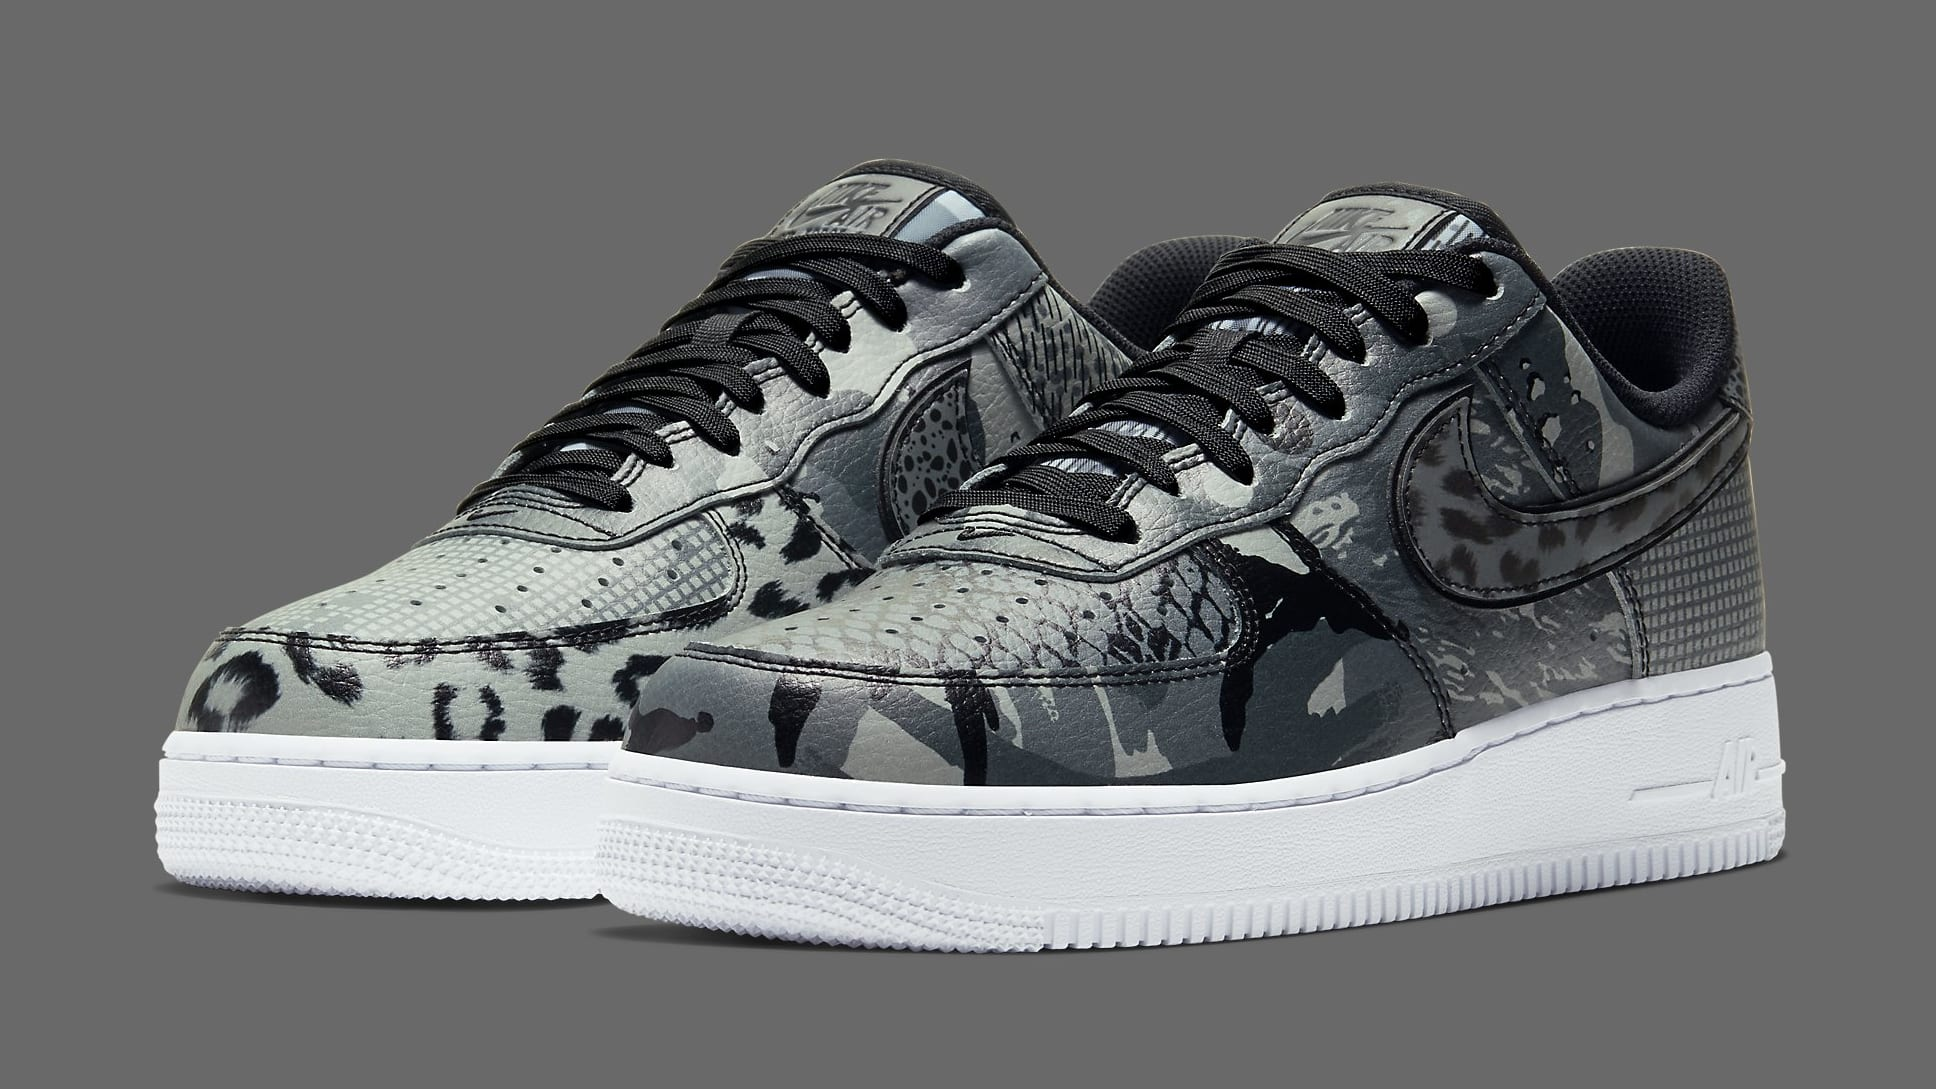 nike-air-force-1-low-all-star-ct8441-001-pair